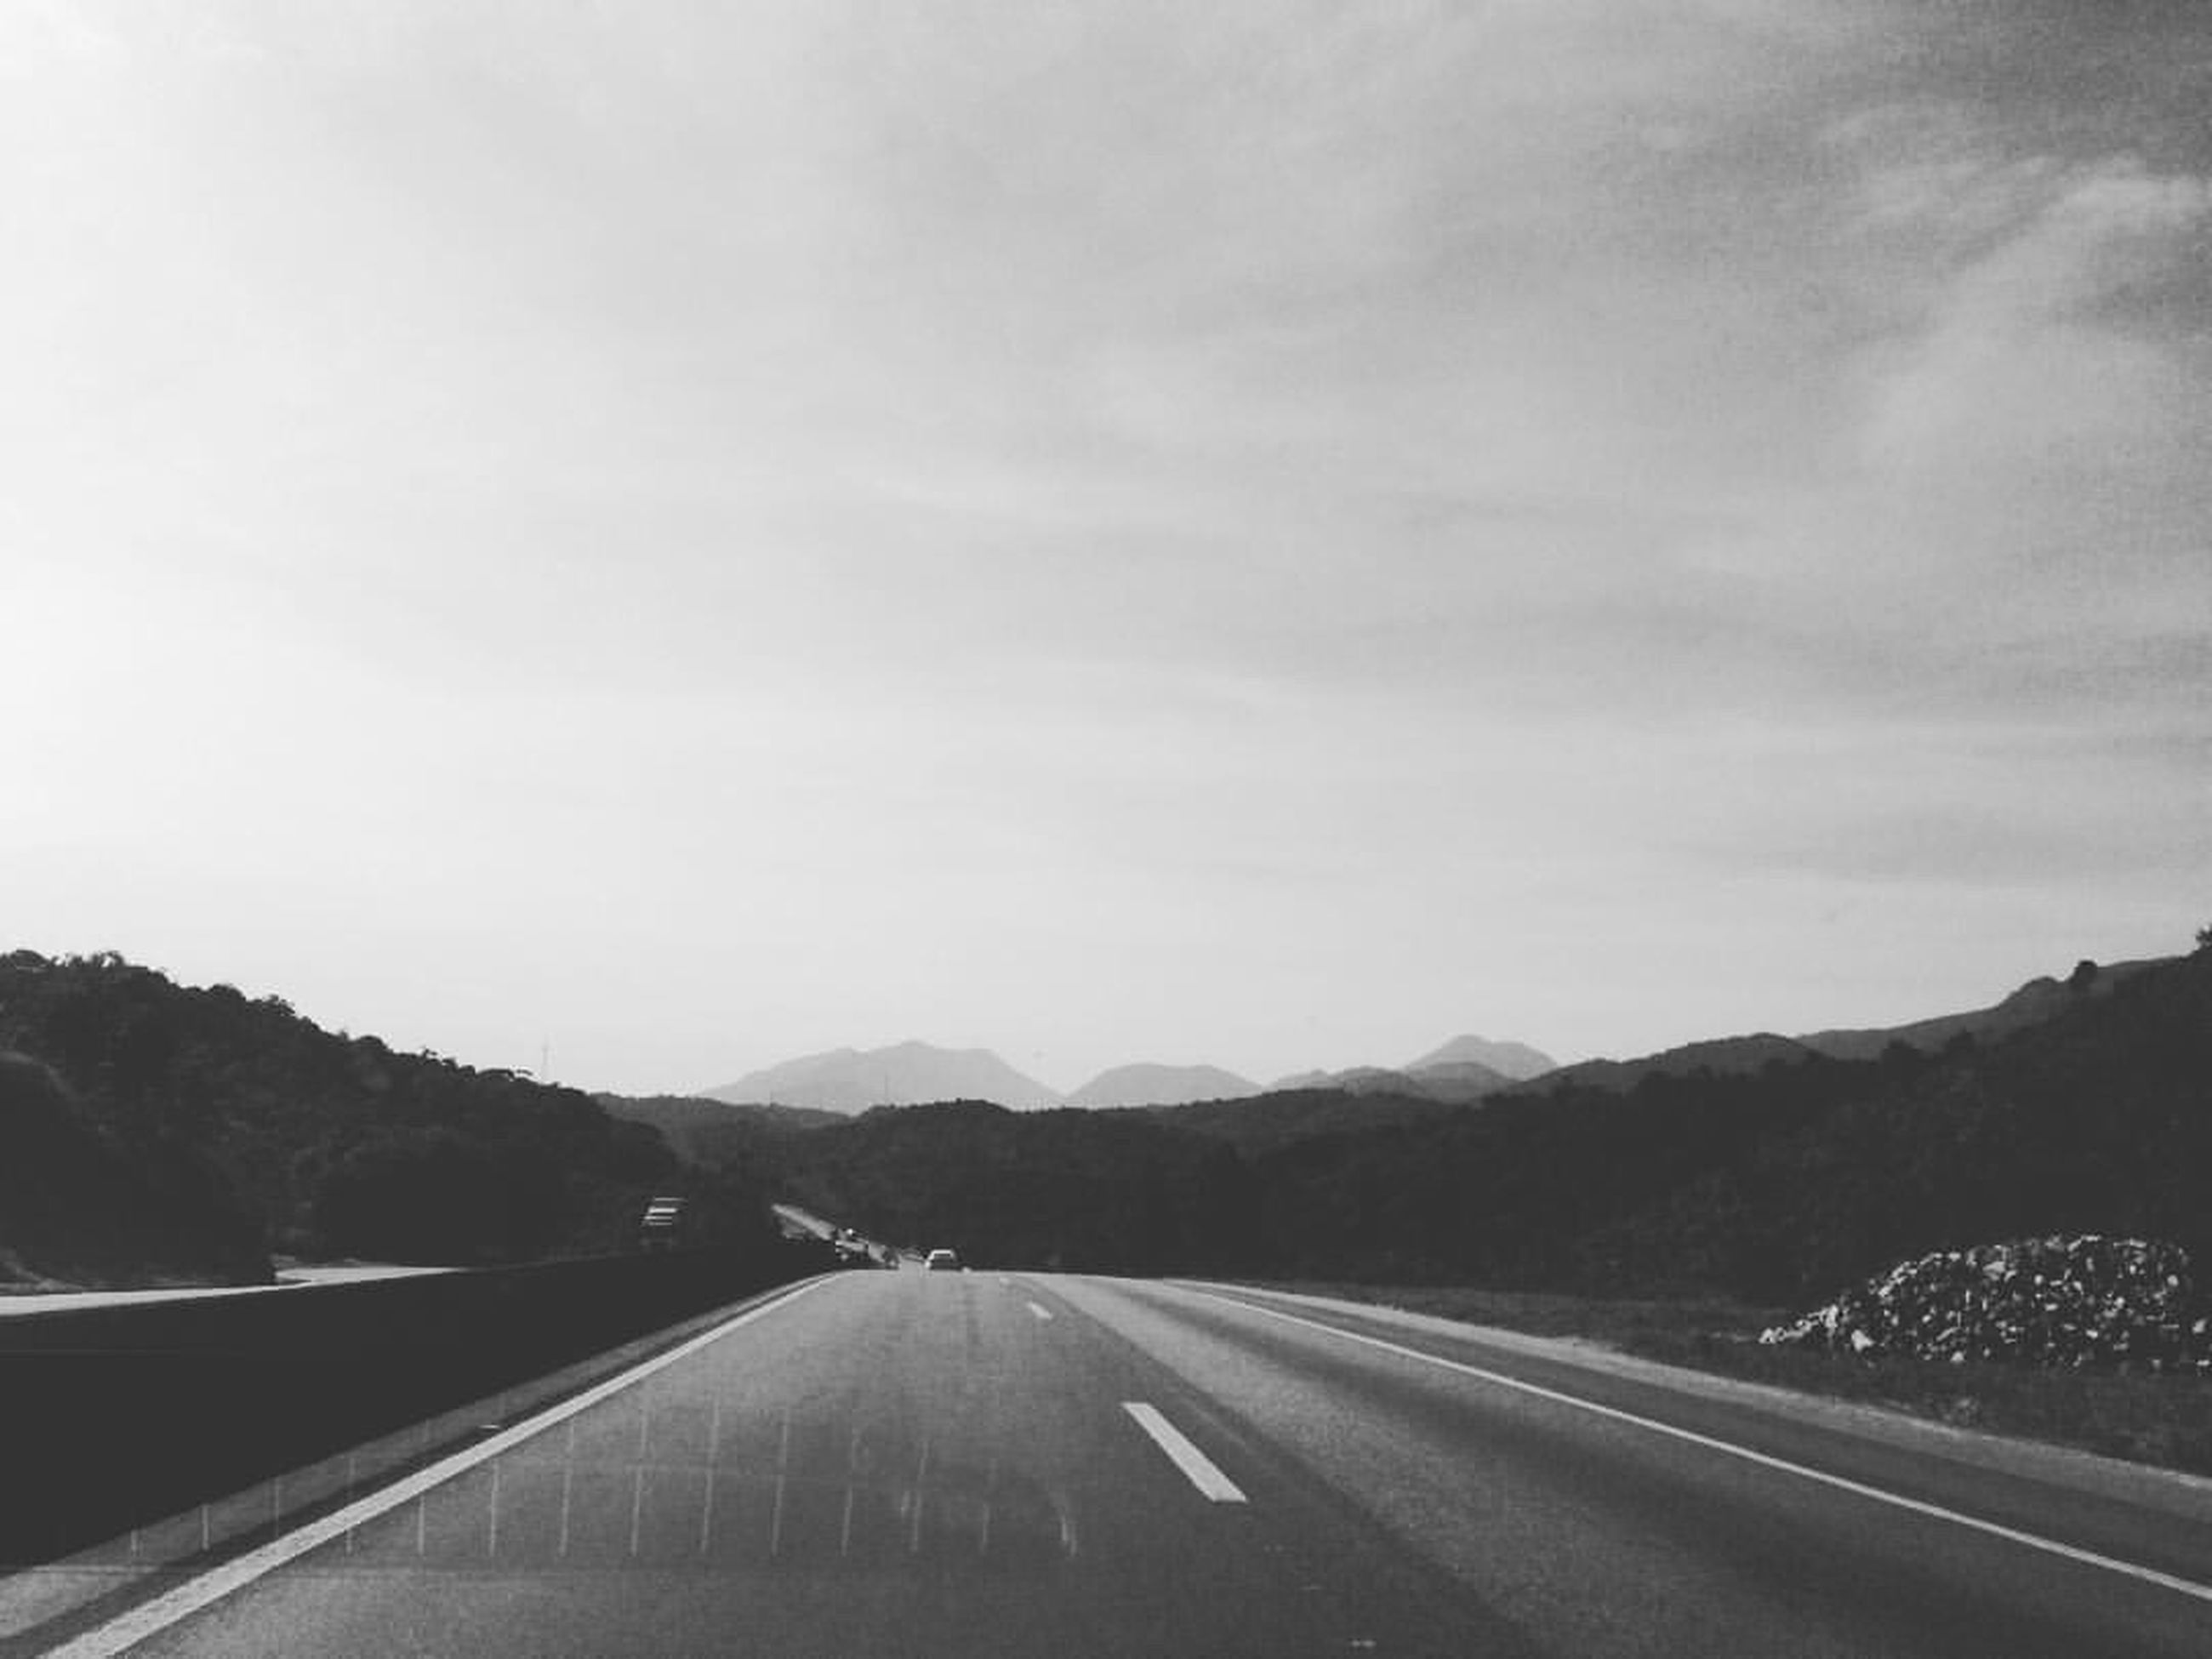 road, the way forward, transportation, mountain, sky, day, outdoors, no people, landscape, beauty in nature, mountain road, nature